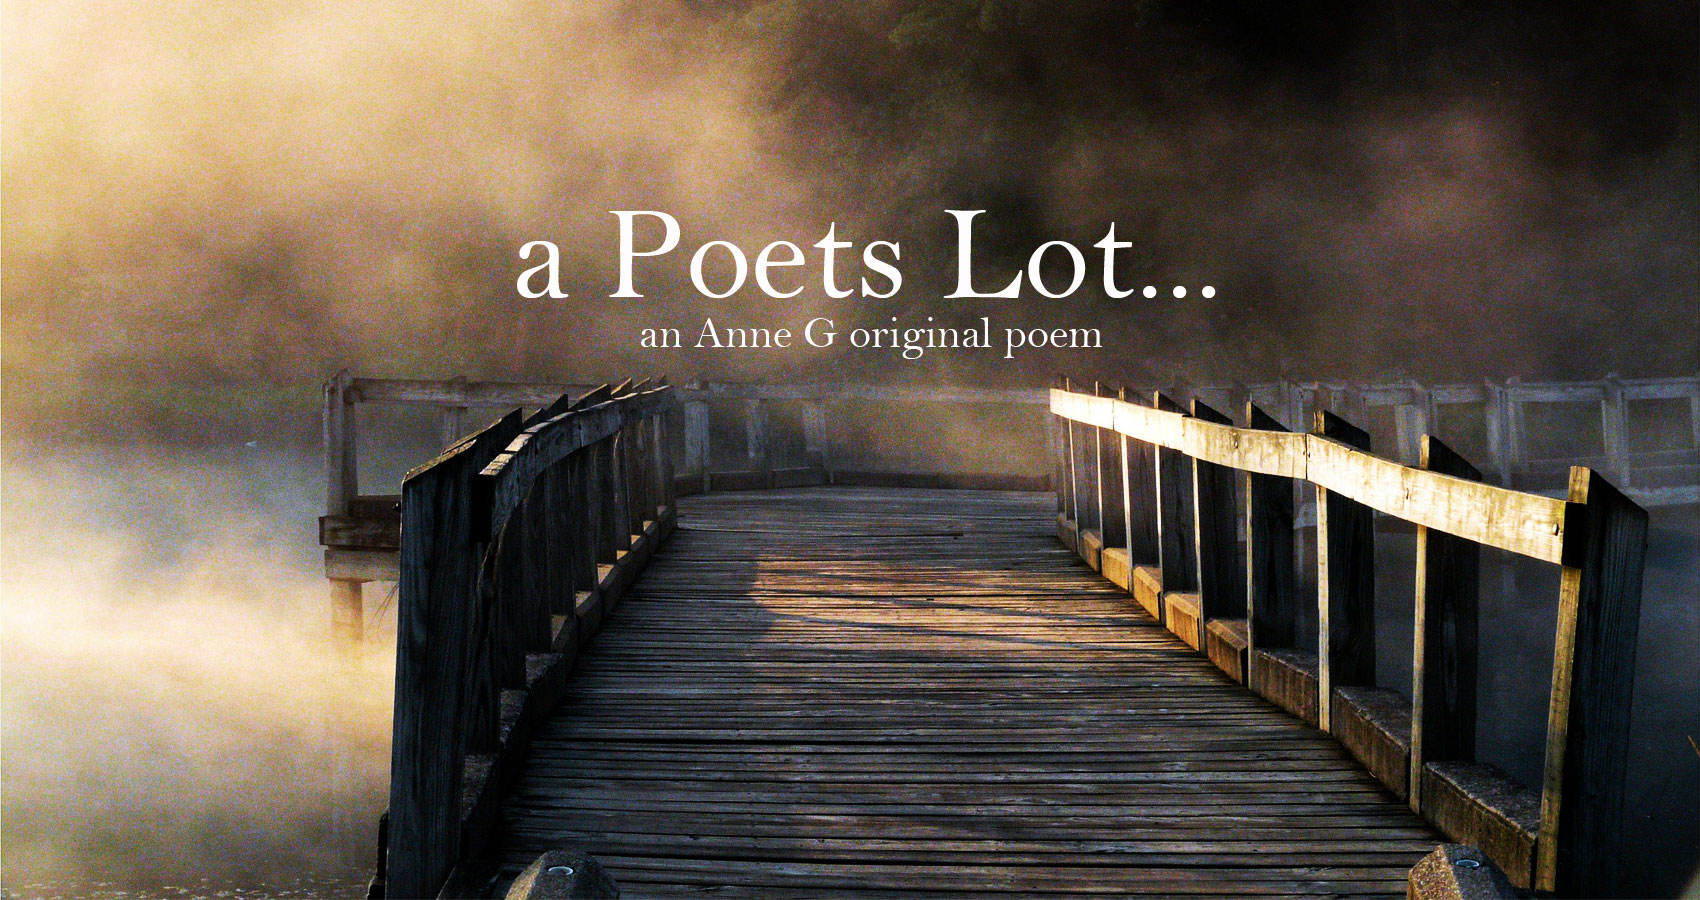 A Poet's Lot at Spillwords.com